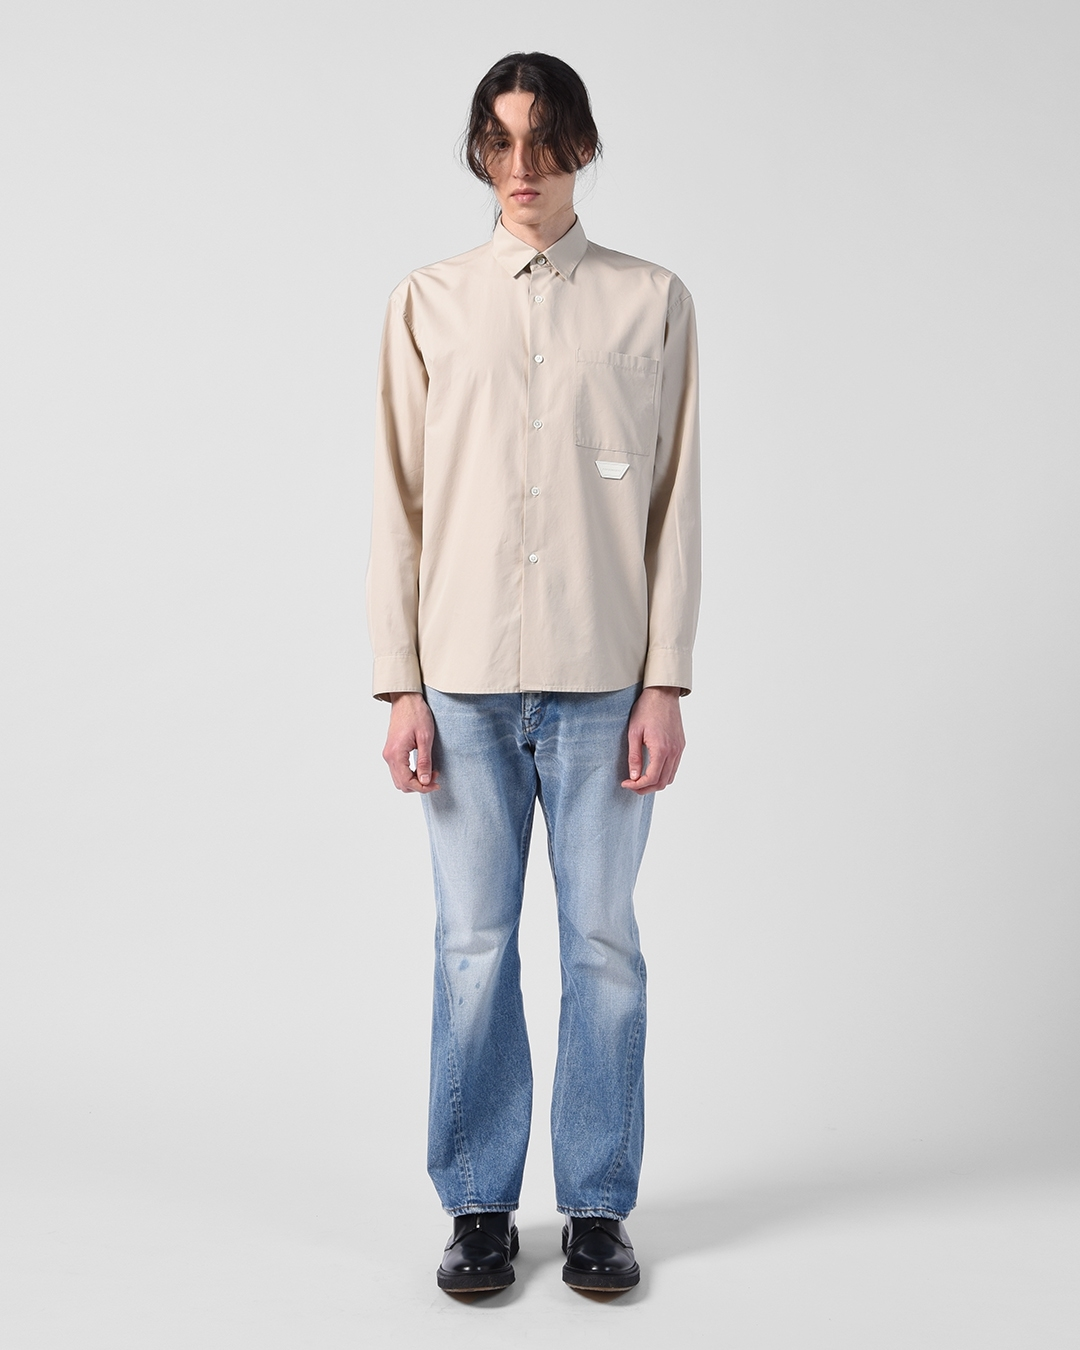 THOMAS BROAD SHIRT 詳細画像 Beige 4